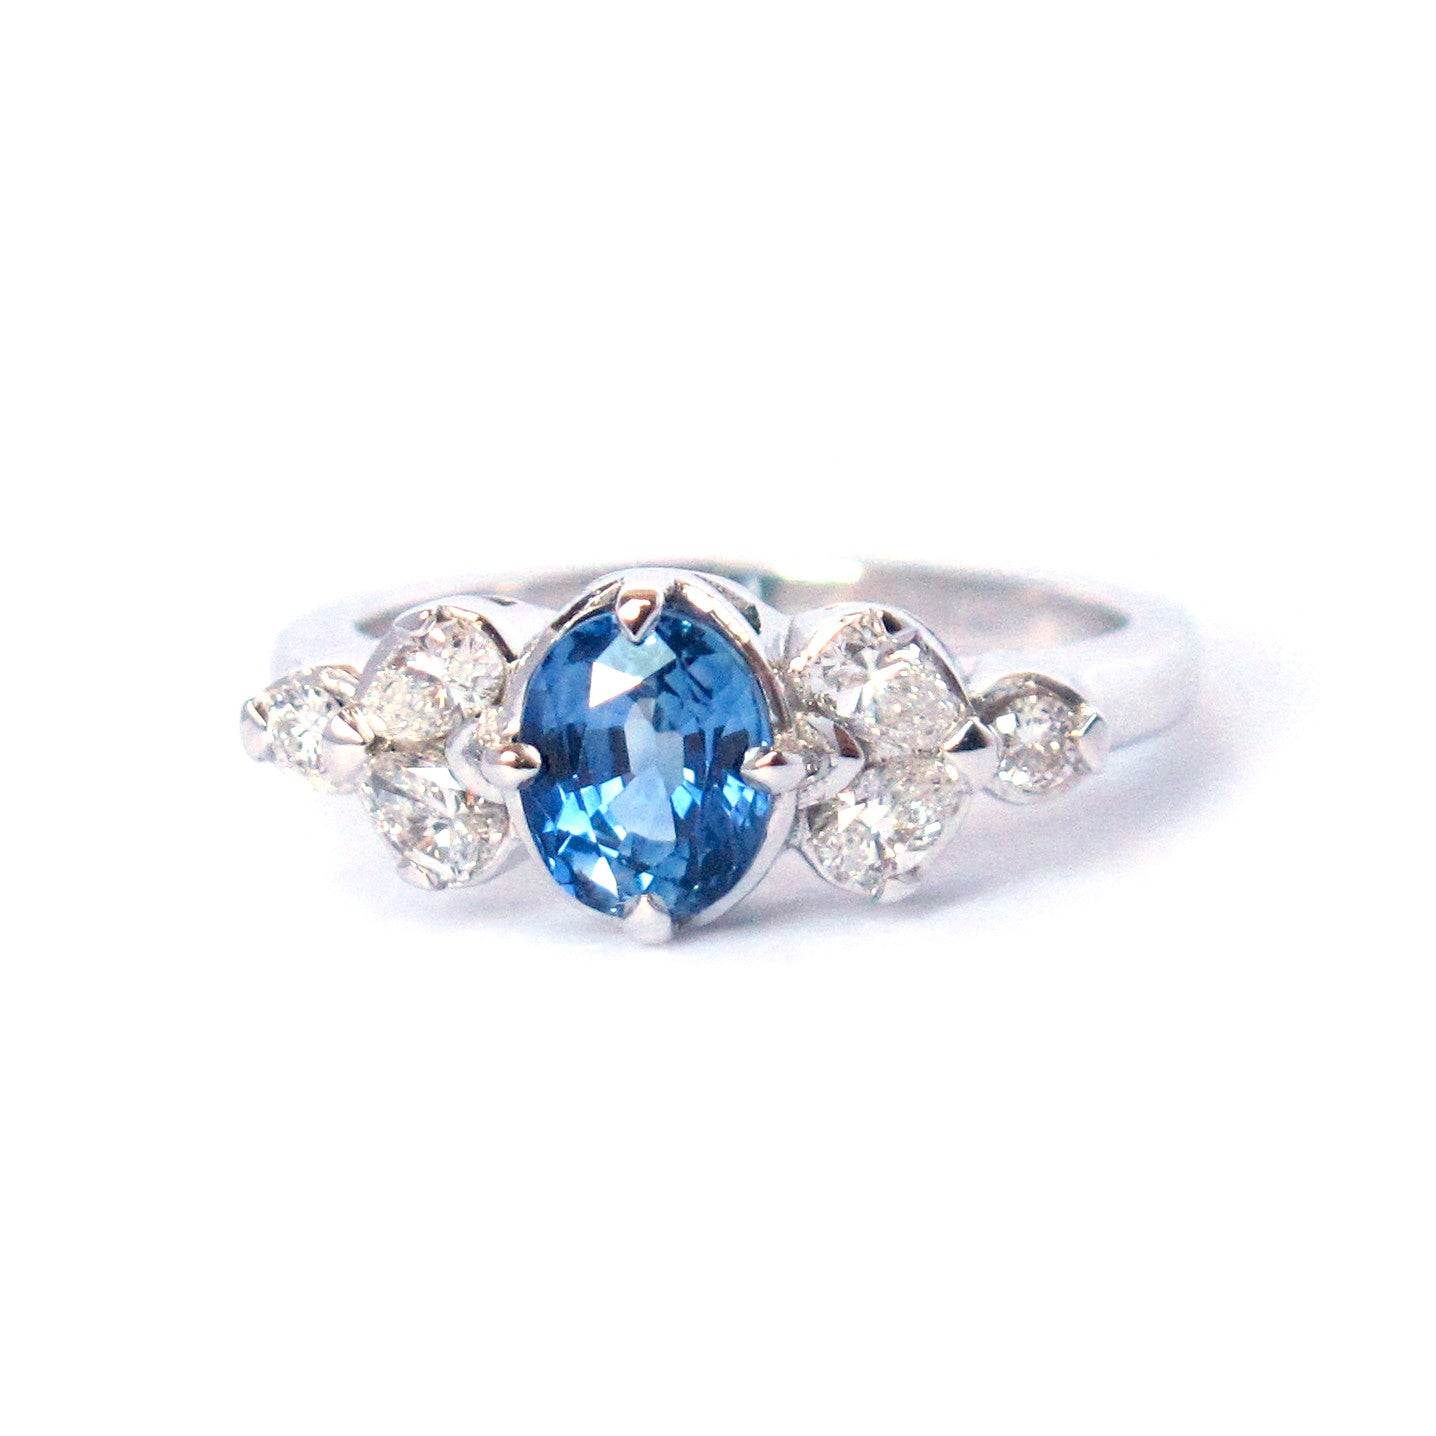 Oval Ceylon Sapphire Engagement Ring